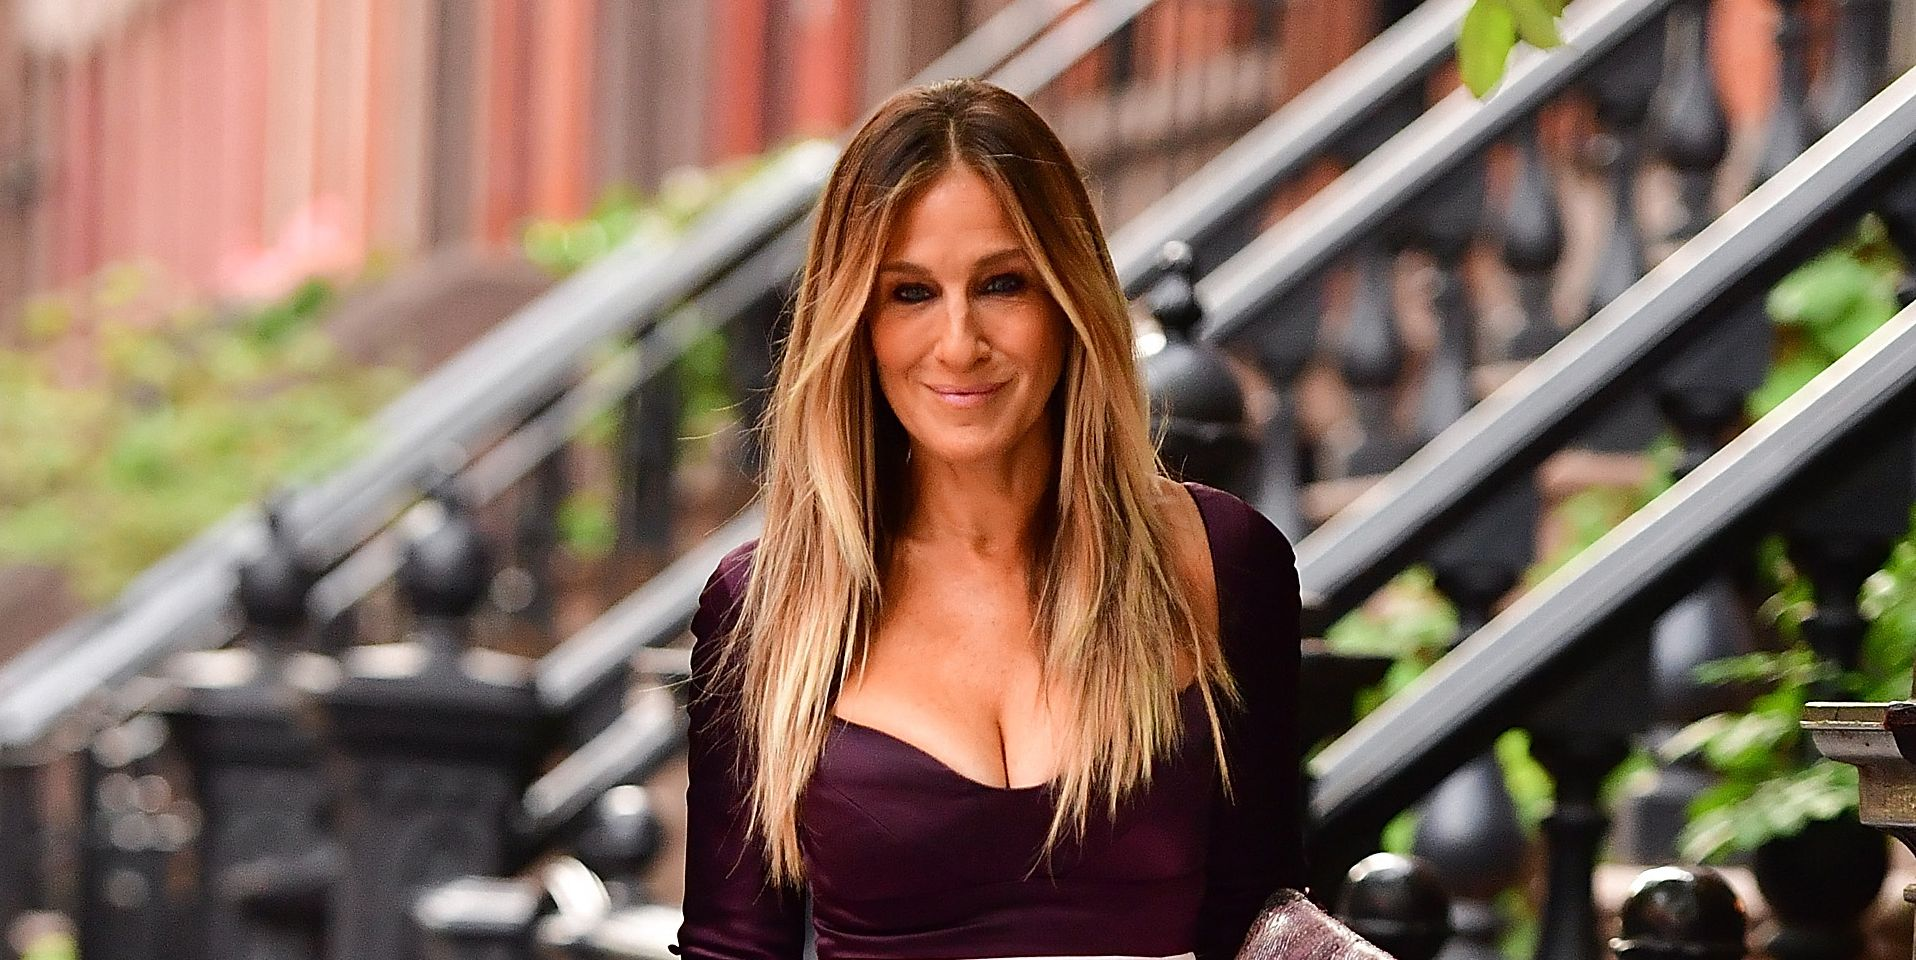 Sarah Jessica Parker Teases the Return of Carrie Bradshaw in New Instagram Clip